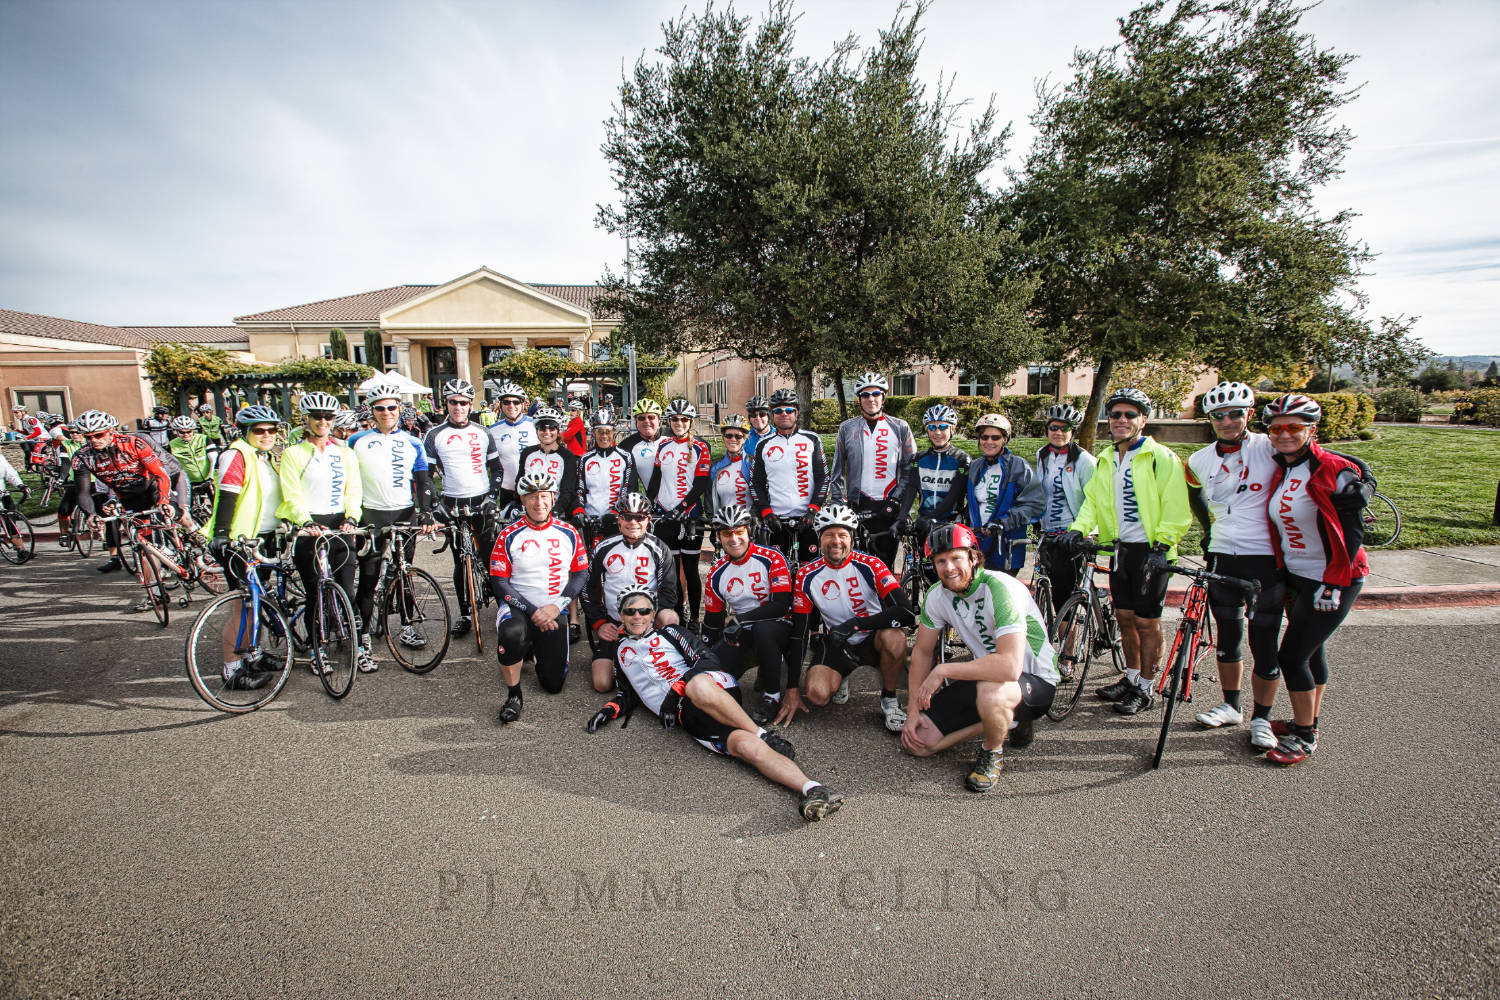 PJAMM Cycling